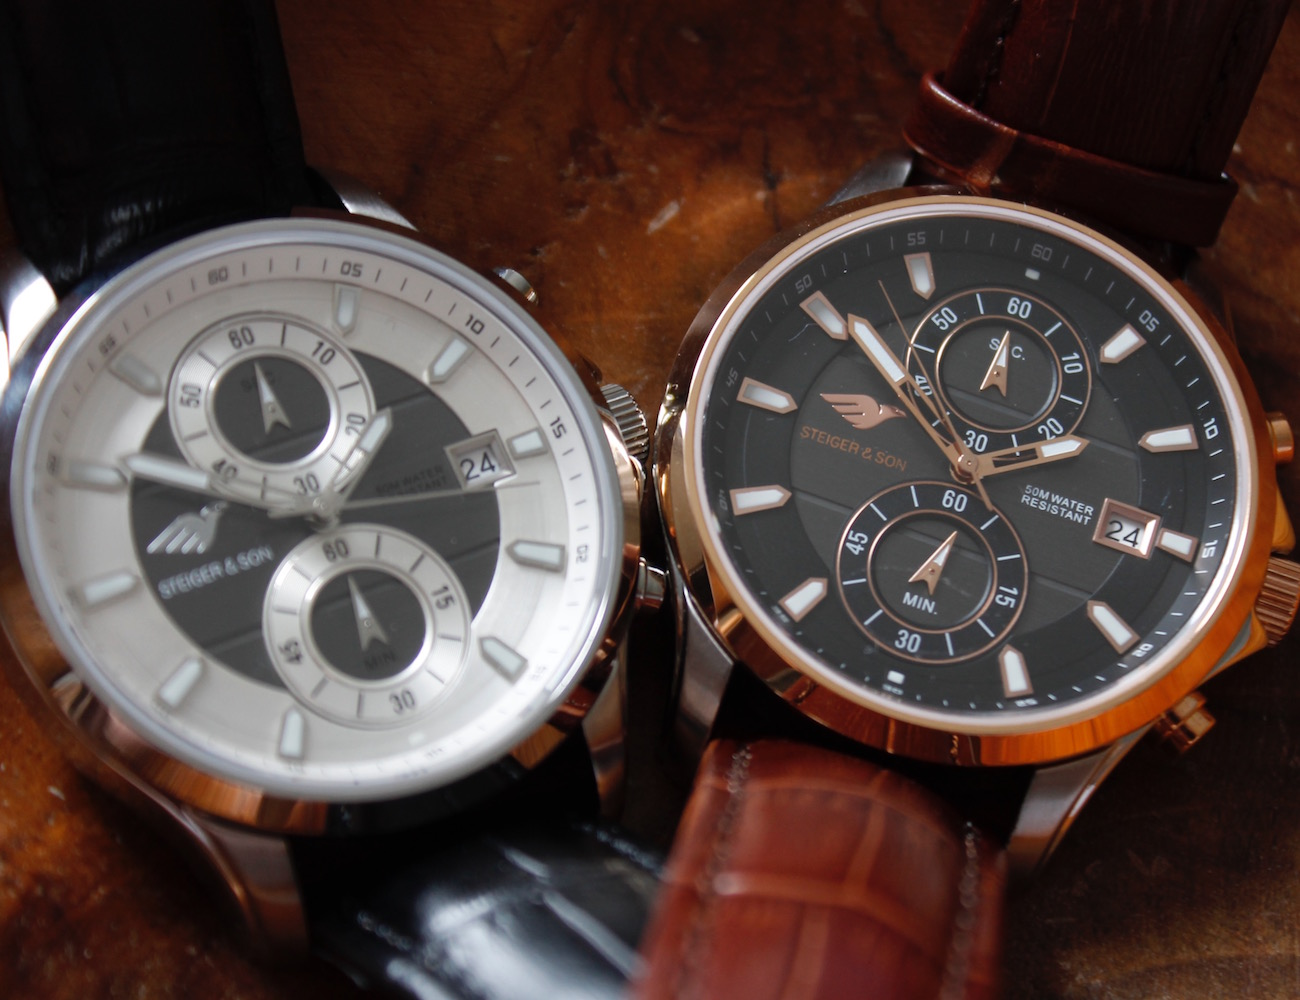 Revoution 1 Chronograph